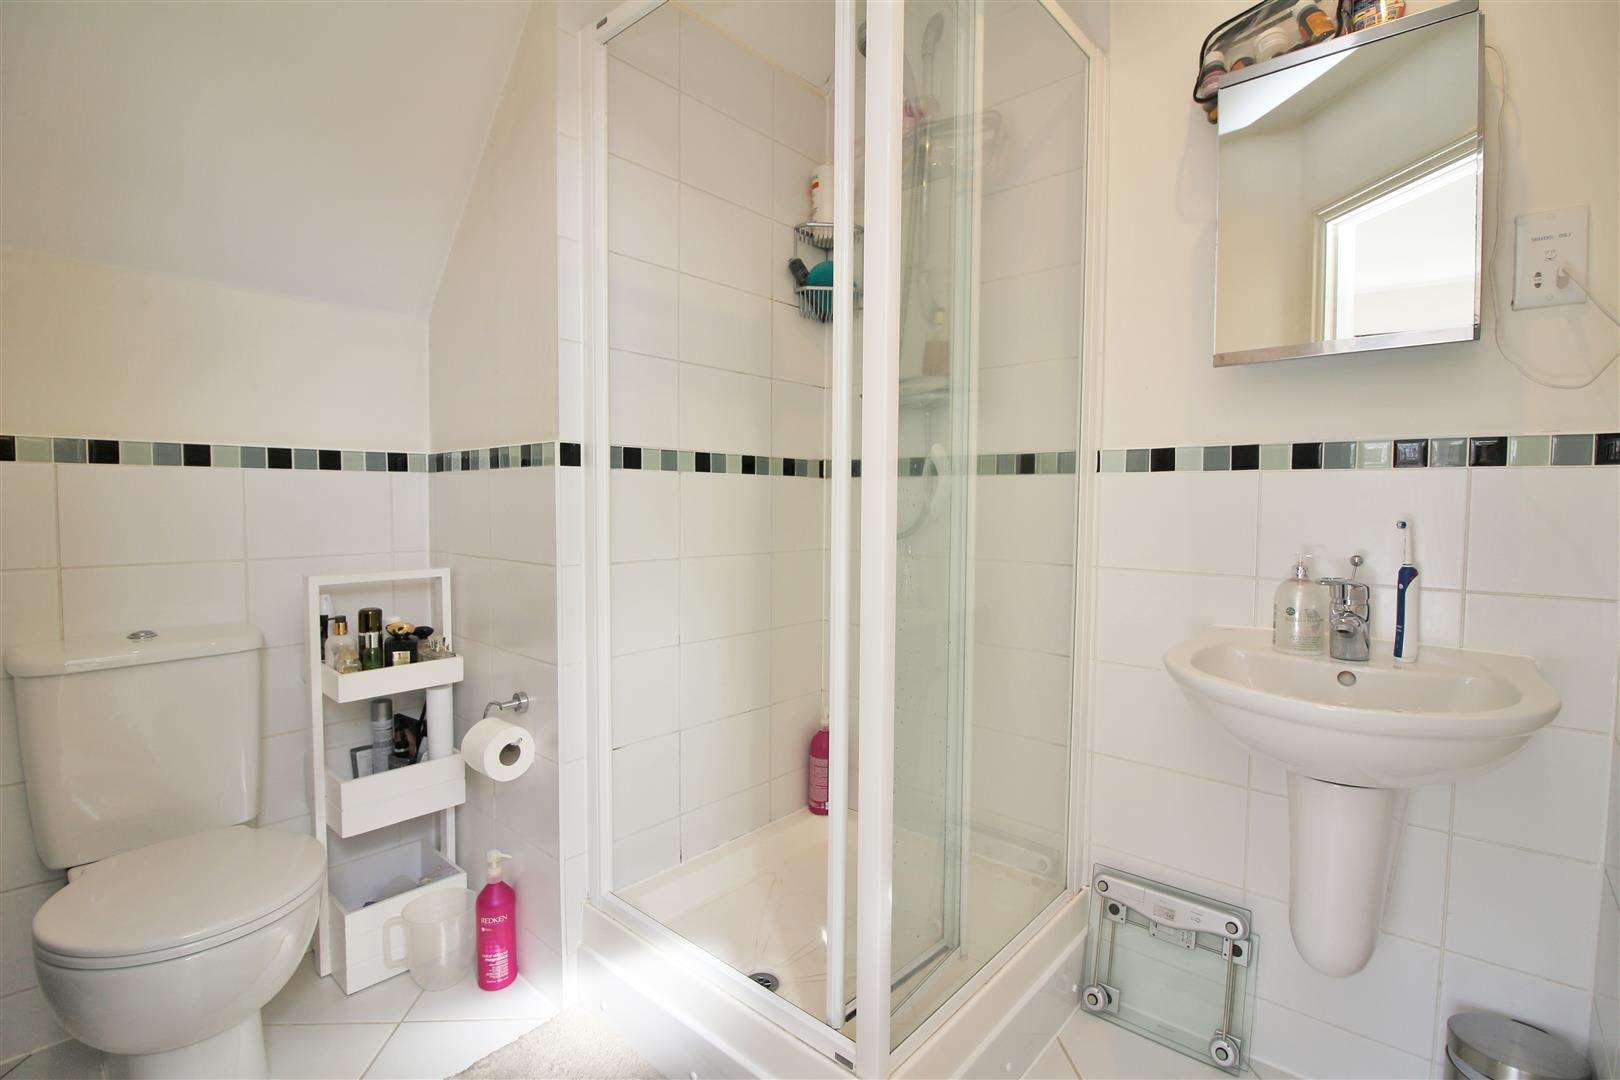 4 bed to rent in Bushey Heath - (Property Image 12)